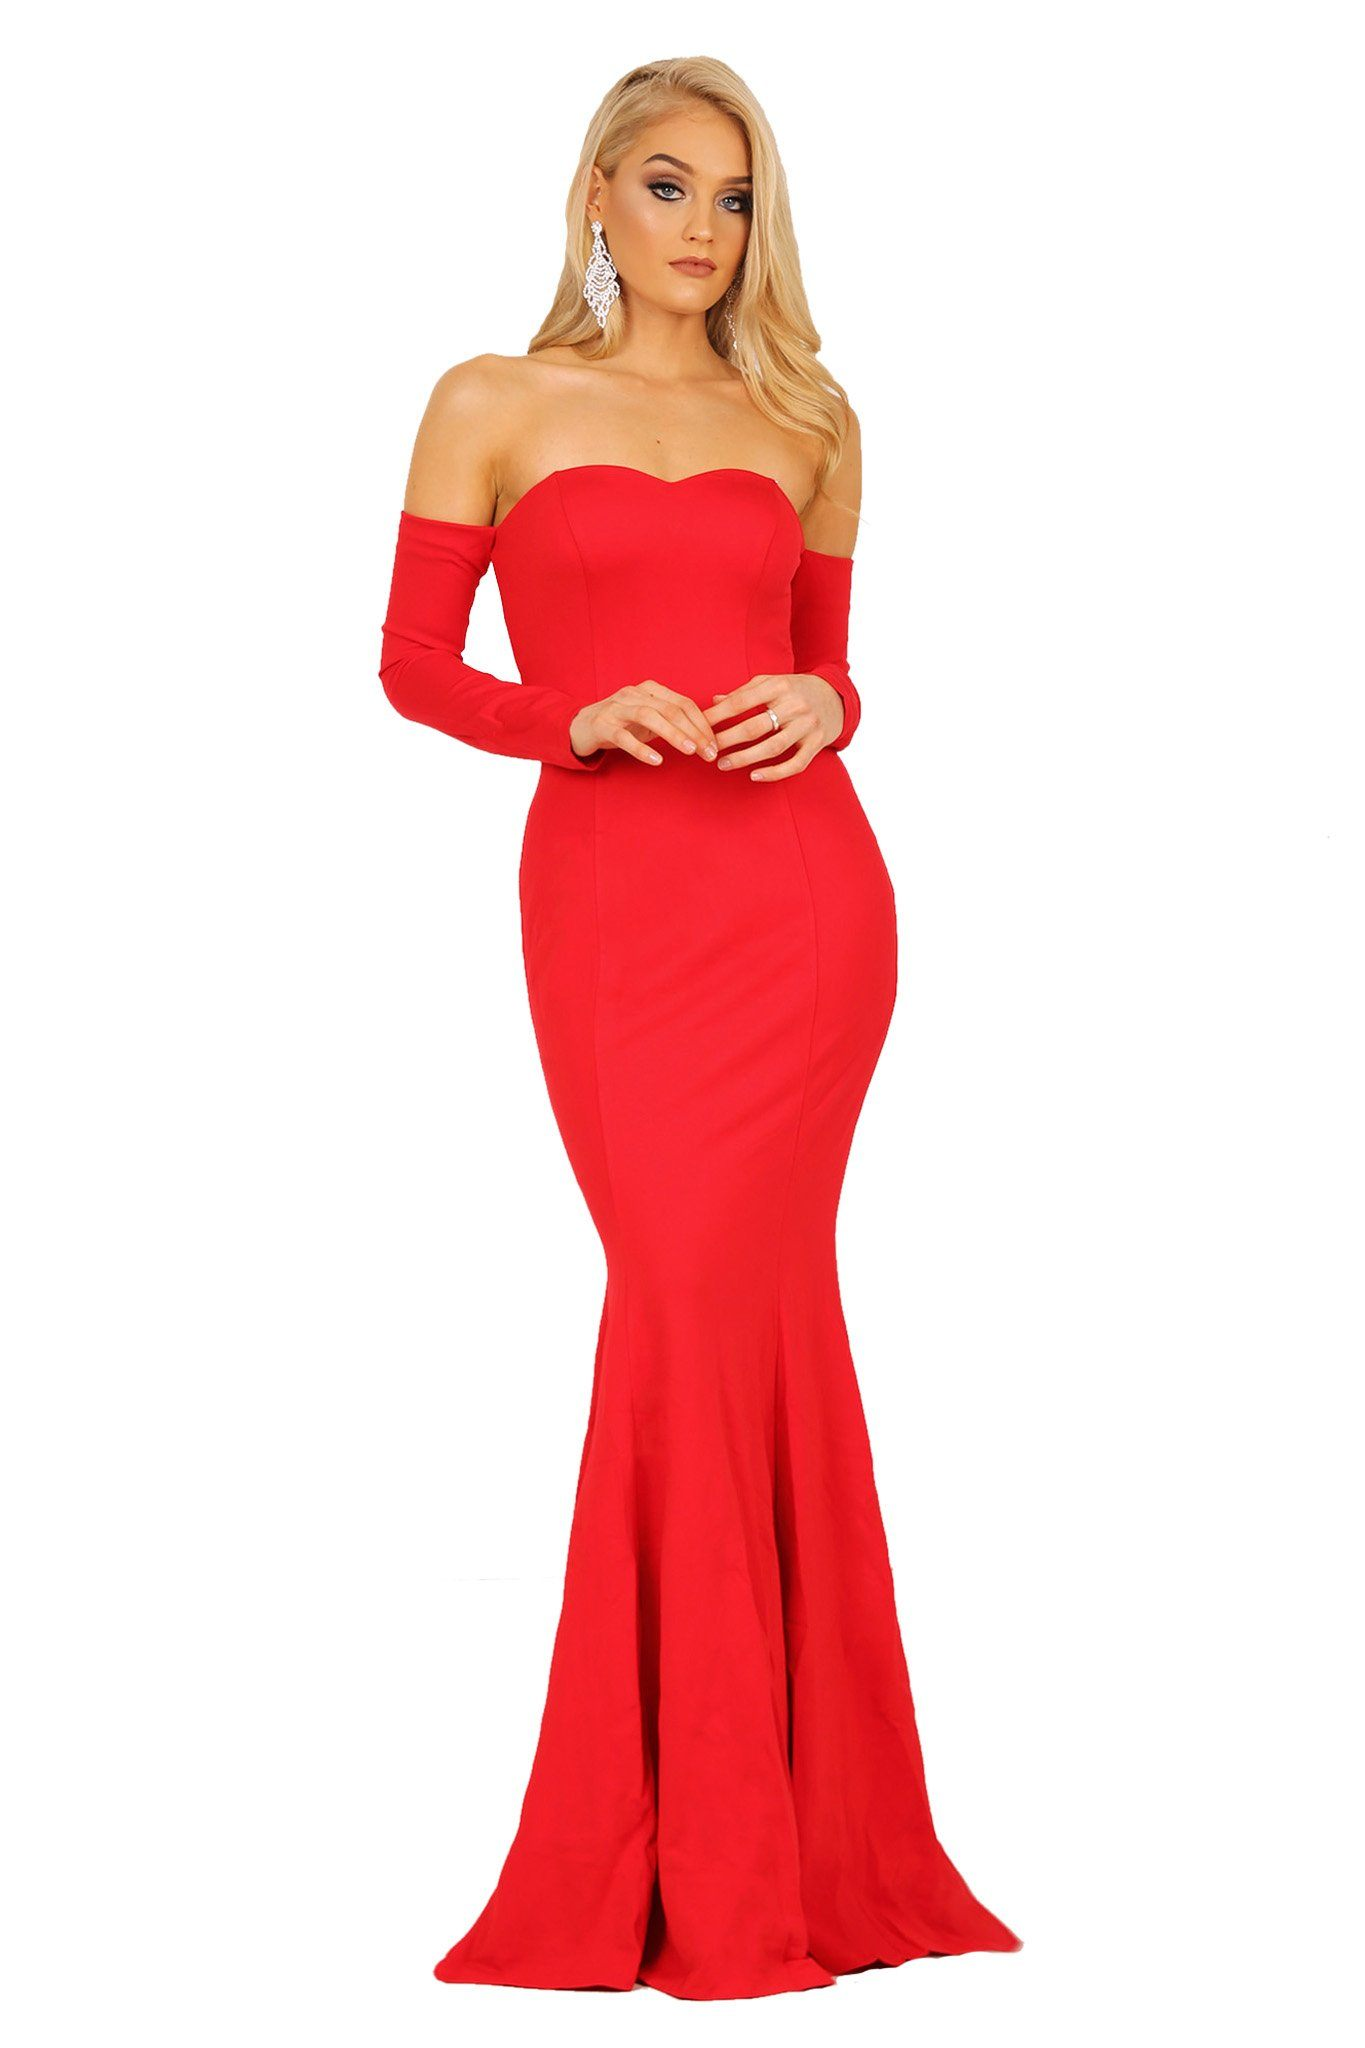 Red long sleeve fitted floor-length evening gown features off-the-shoulder design, sweetheart neckline and mermaid silhouette